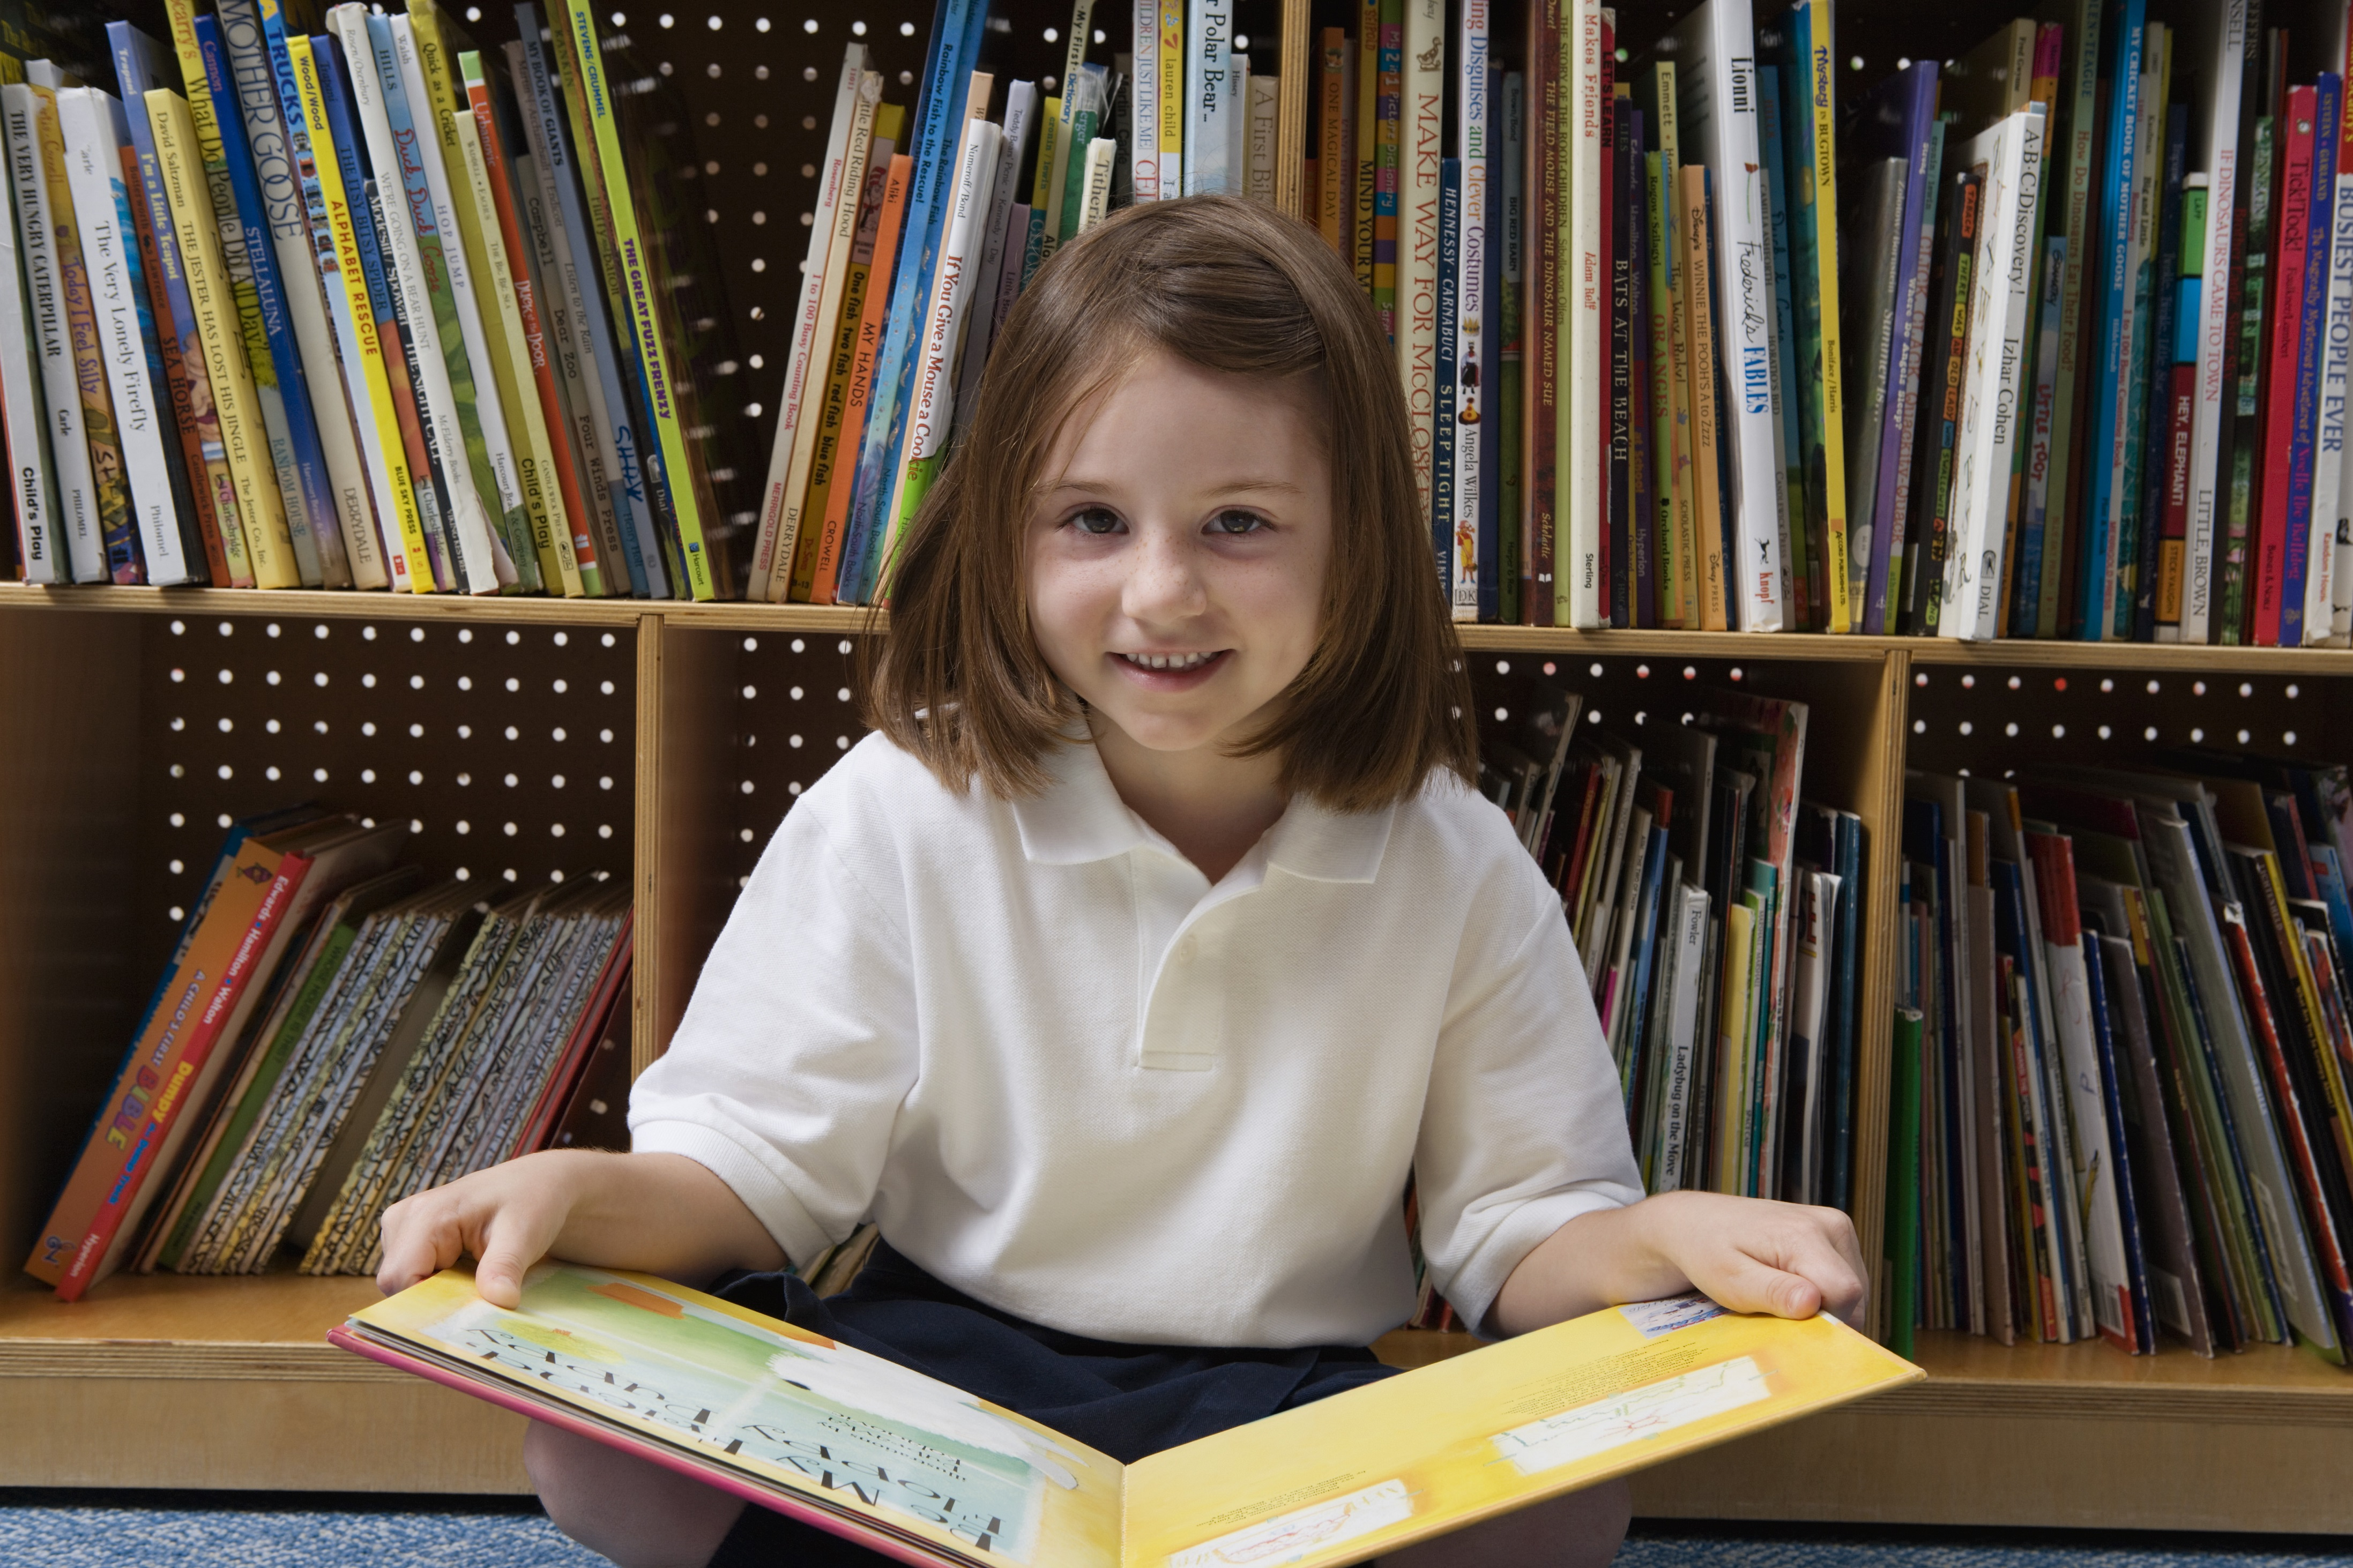 Little girl sits against a bookshelf with a book in a yellow cover open on her lap